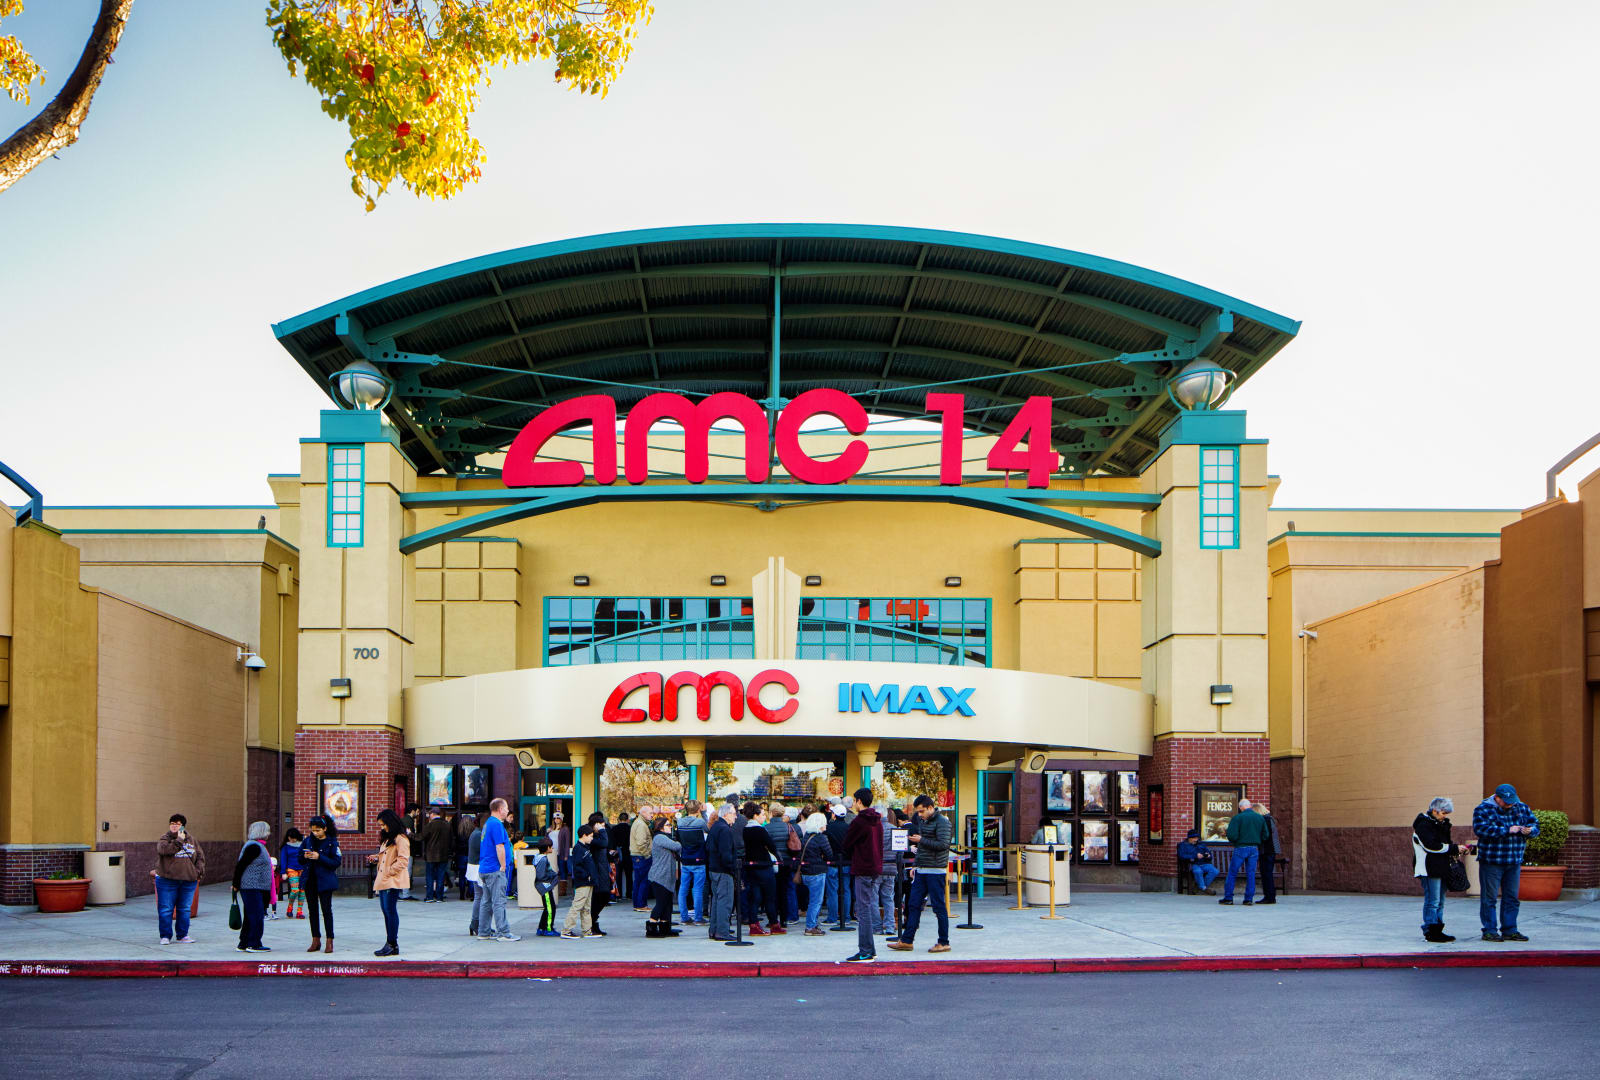 AMC multiplex movie theater entrance facade with sign